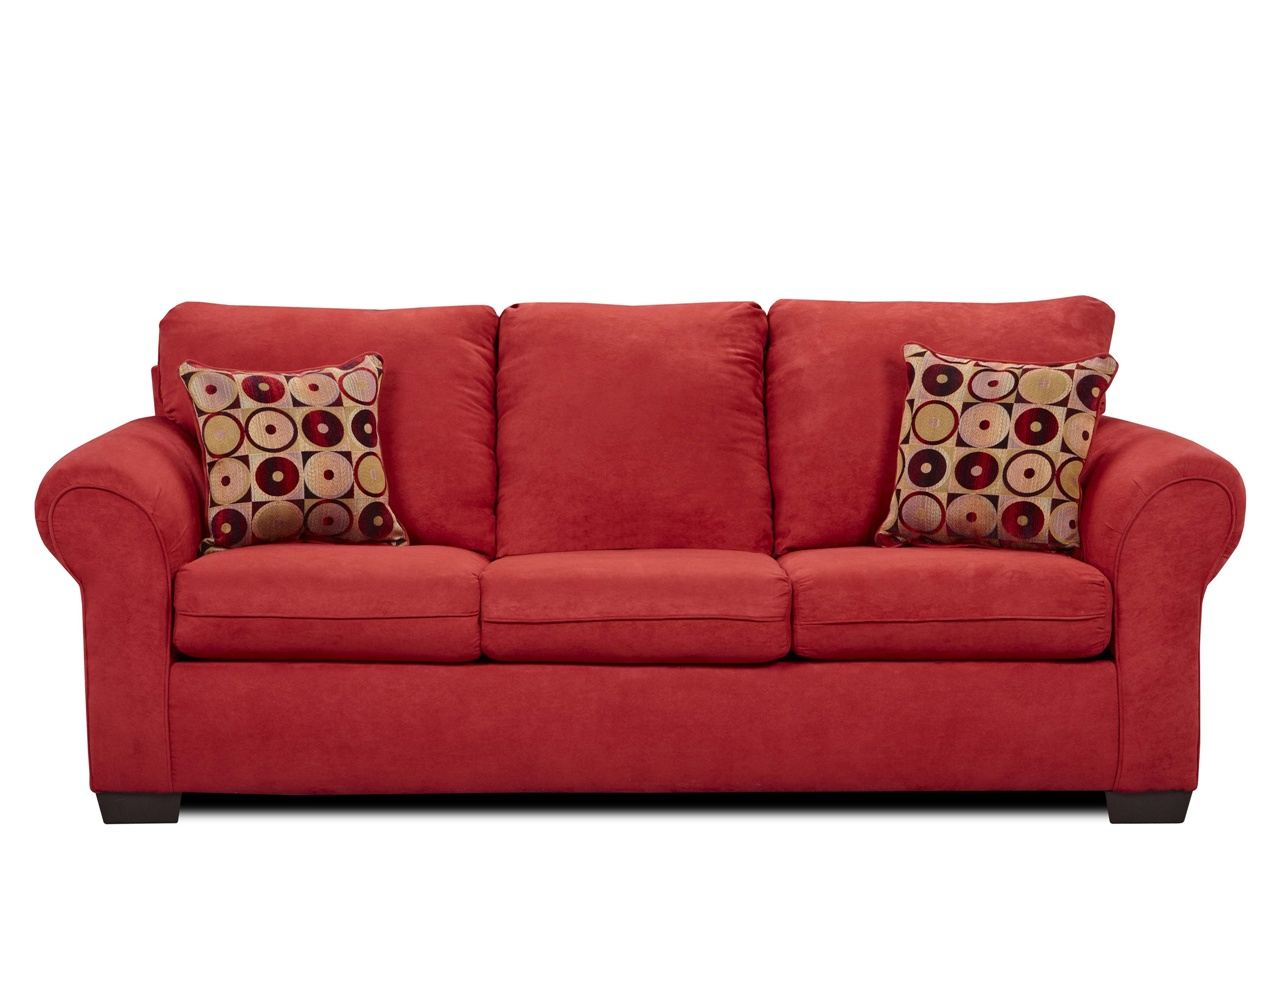 Cute cheapest couches available online Couch amp Sofa  : discount red couches from sofaideas.net size 1280 x 1006 jpeg 201kB